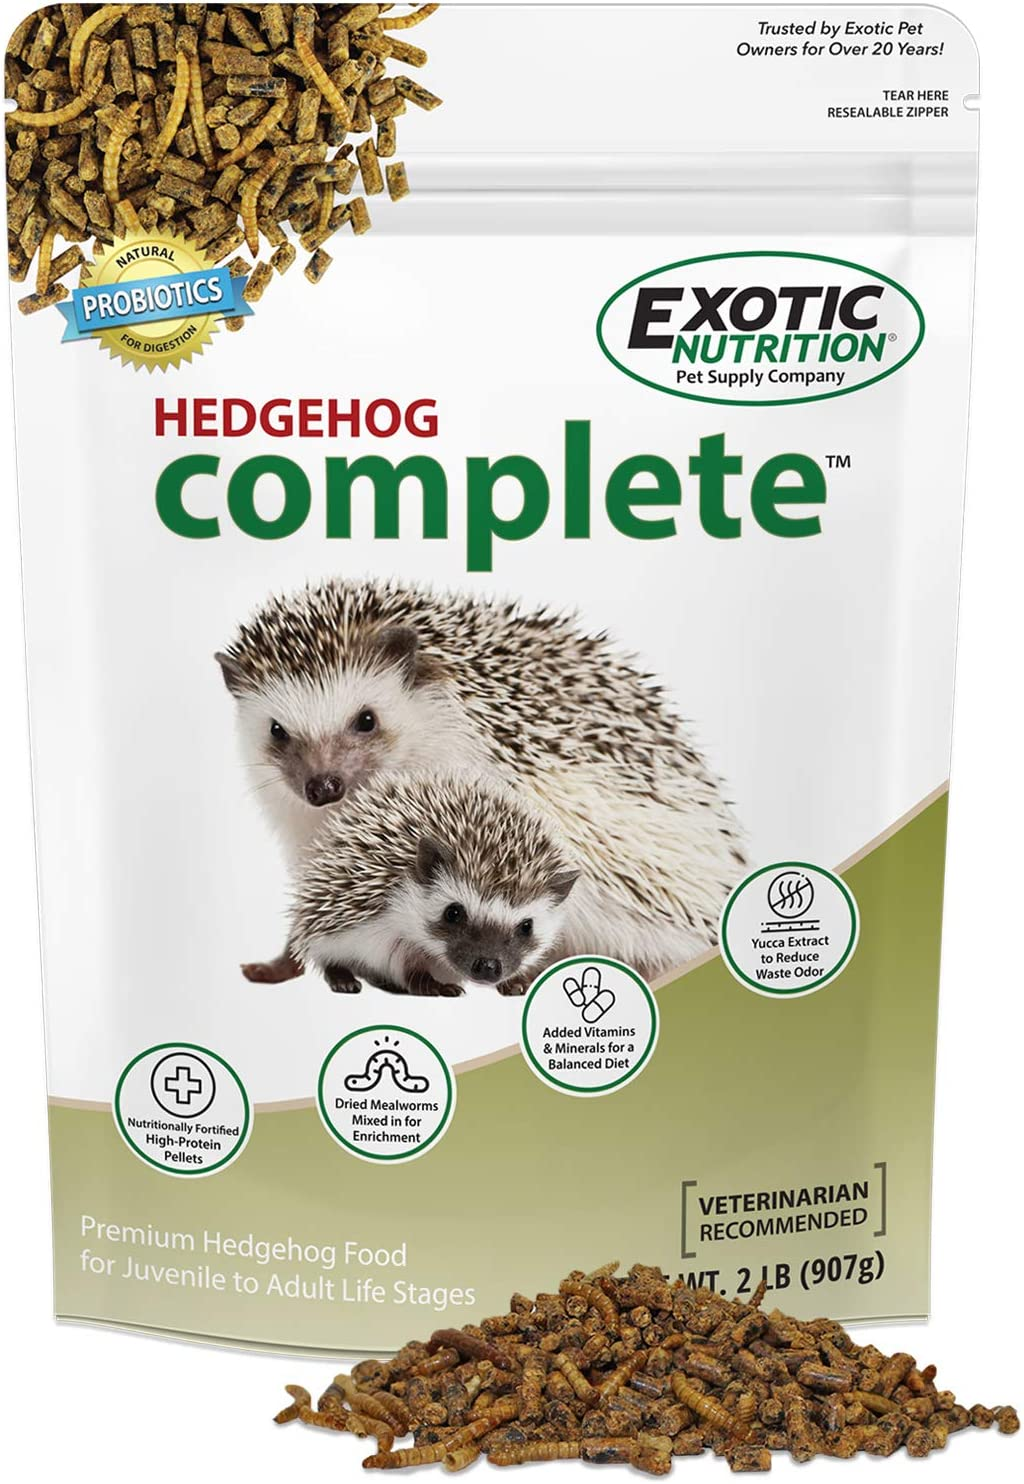 Hedgehog Complete 2 lb - Nutritionally Complete Natural Healthy High Protein Pellets & Dried Mealworms - Food for Pet Hedgehogs